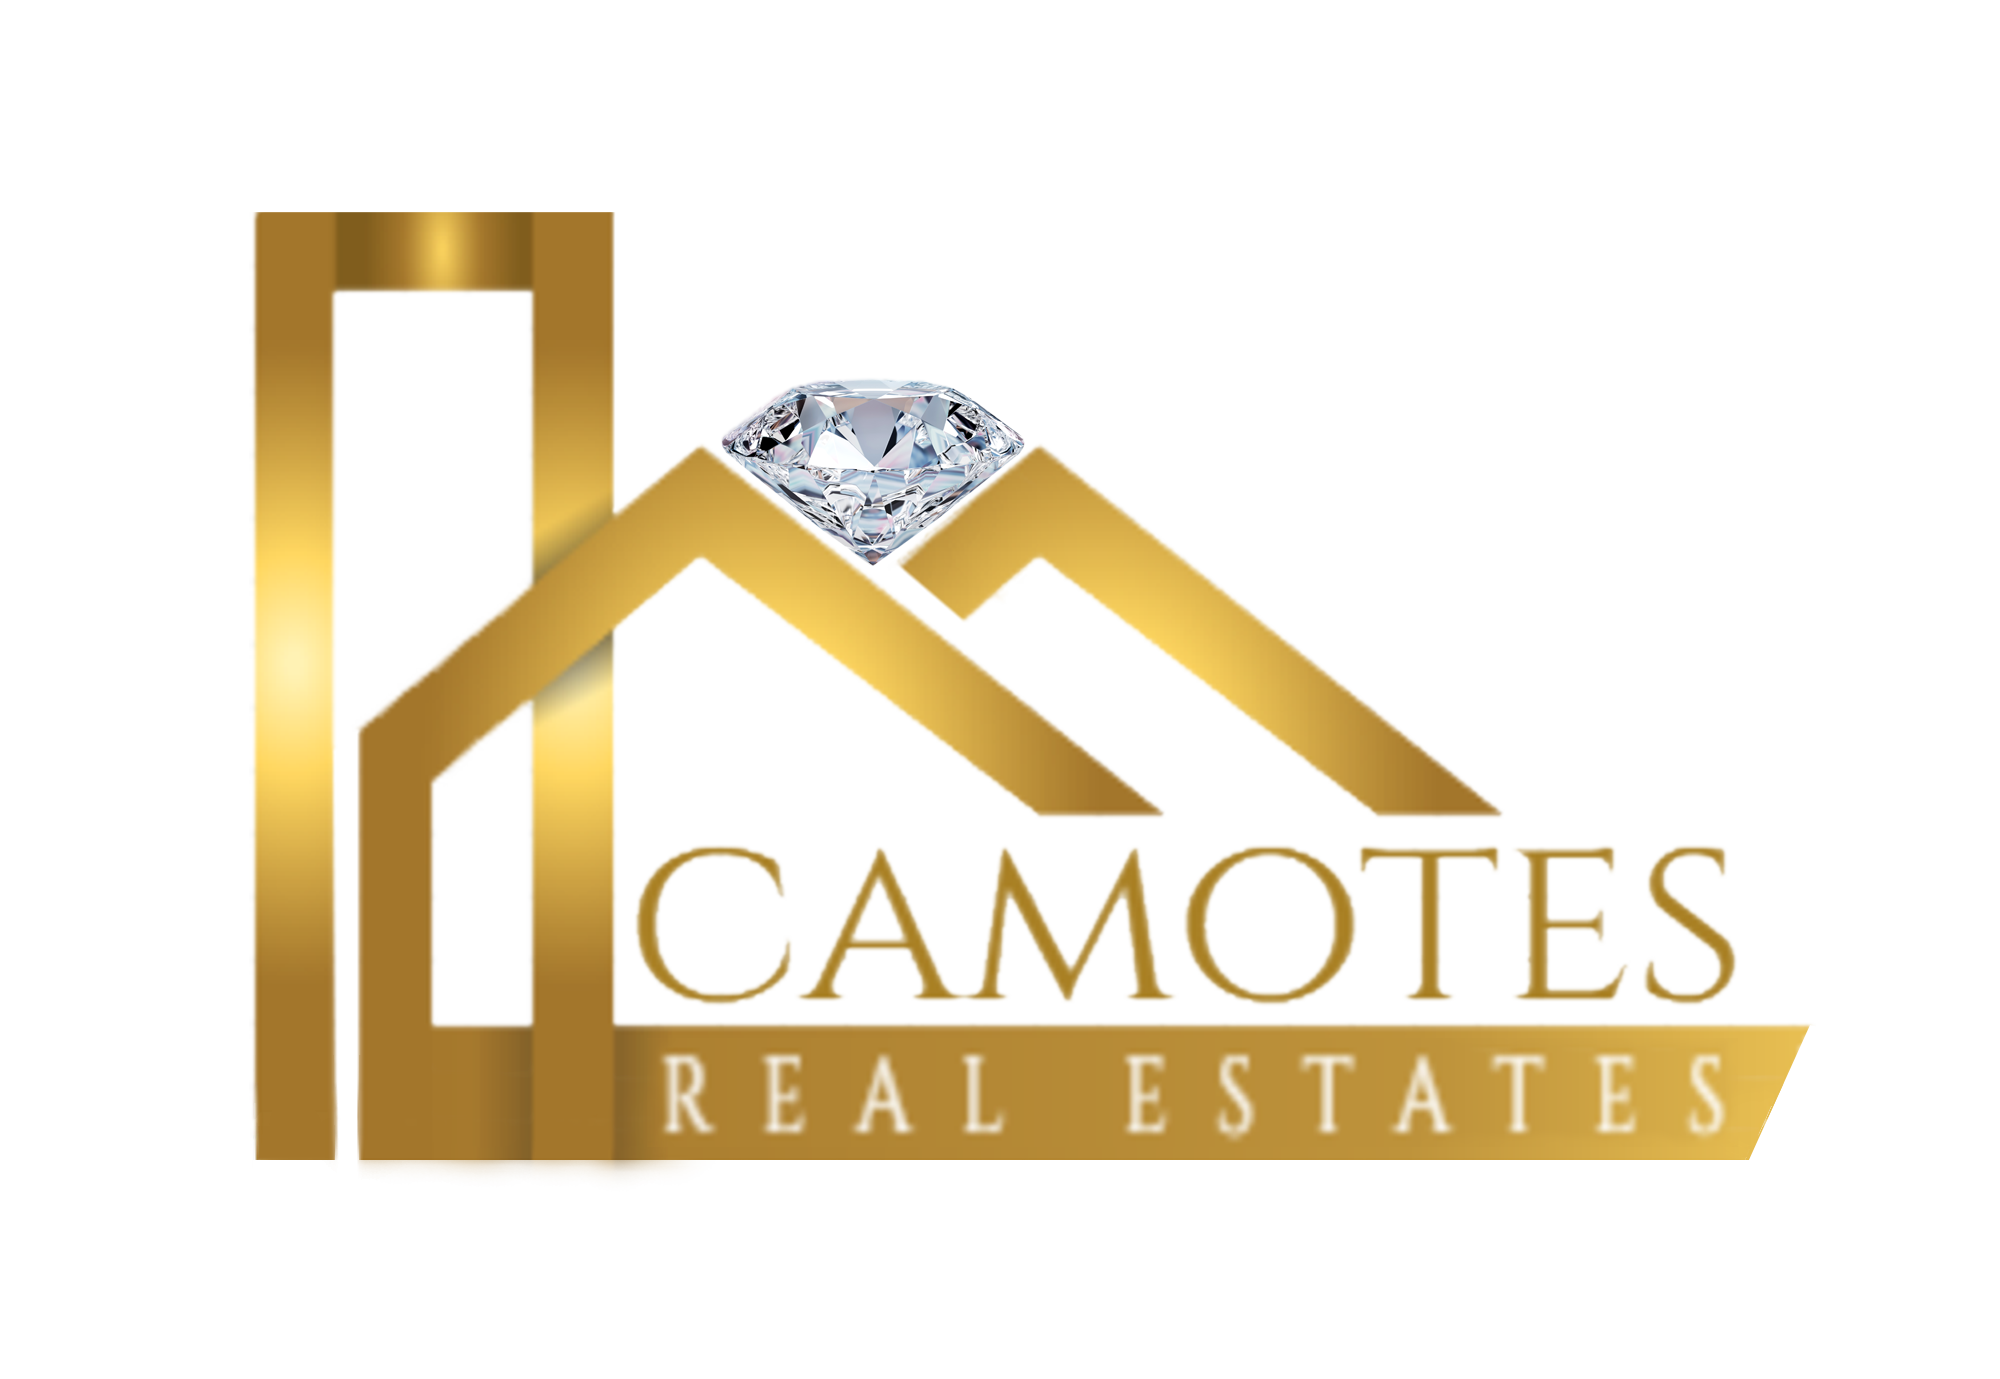 Camotes Real Estate